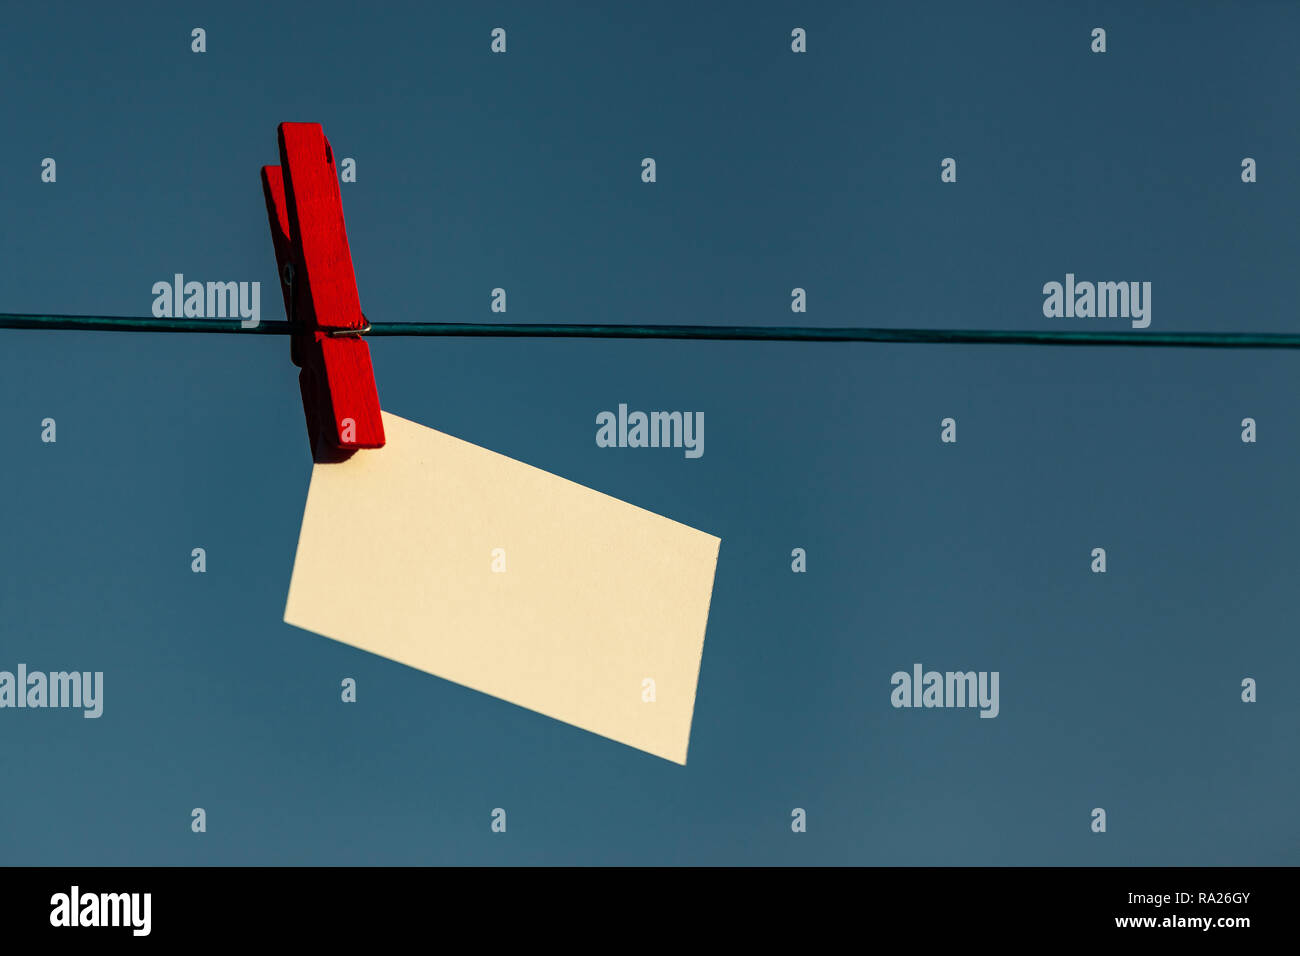 Red peg and a card on a washing line - Stock Image